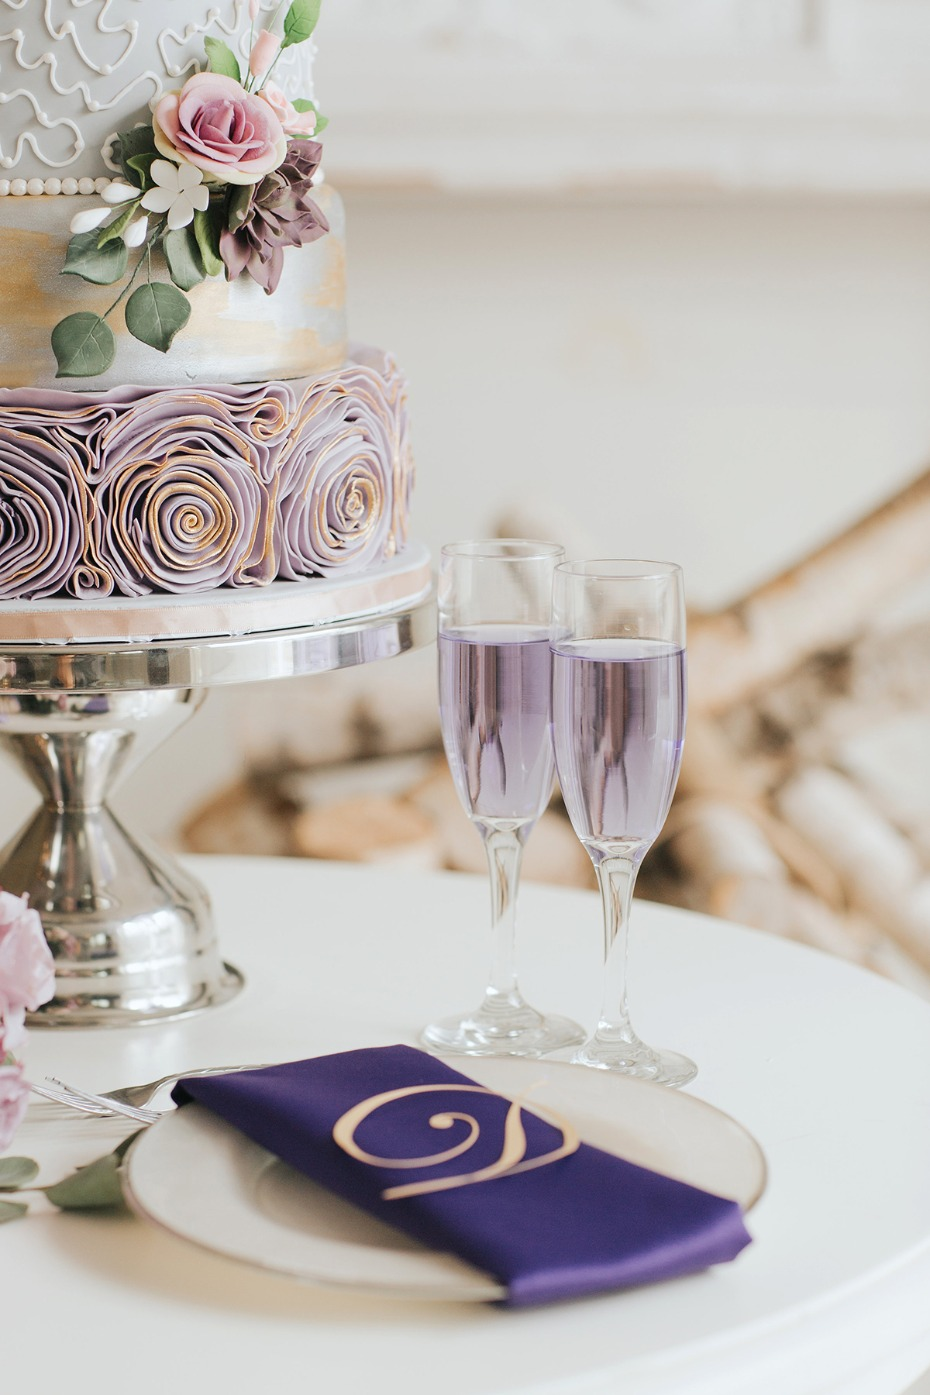 How To Add A Little Fairytale Whimsy Into Your Wedding Day